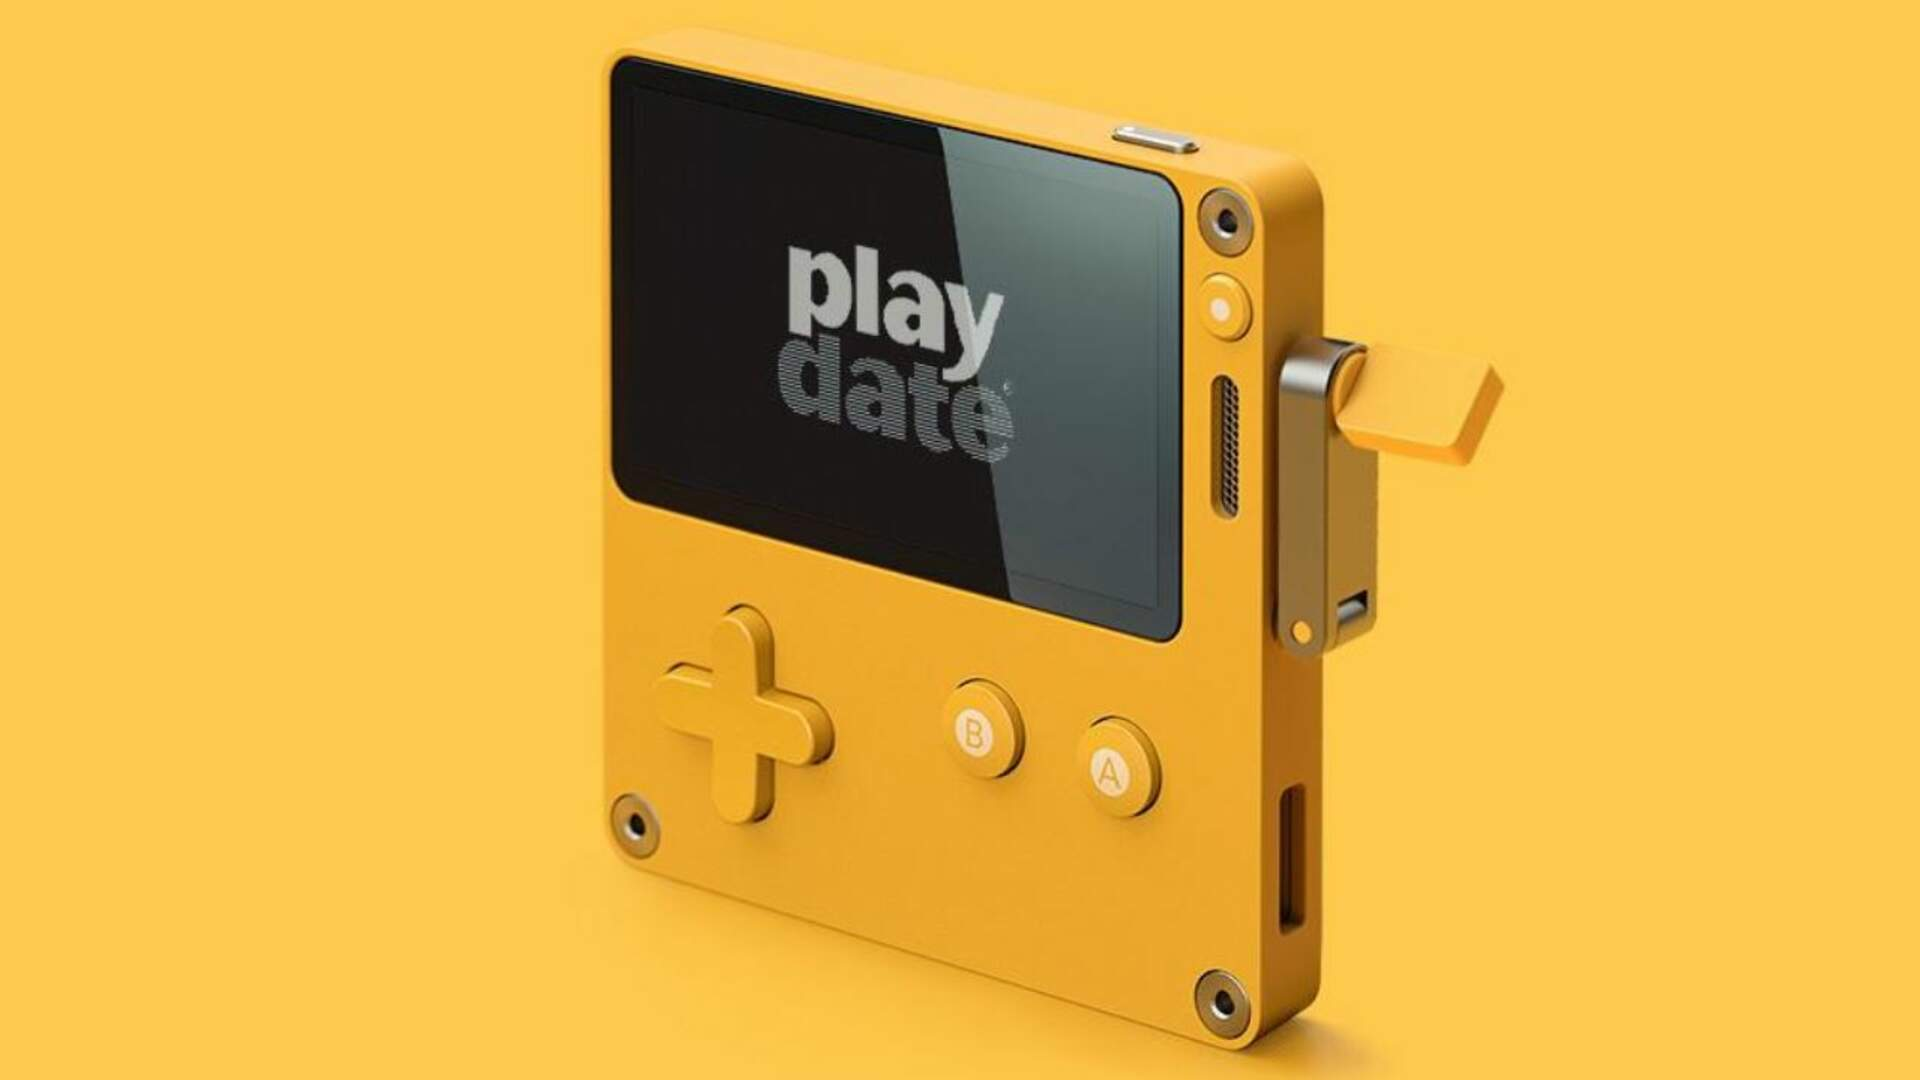 Playdate is a Brand New Video Game Handheld Featuring Exclusive Games by Keita Takahashi, Bennett Foddy, and More